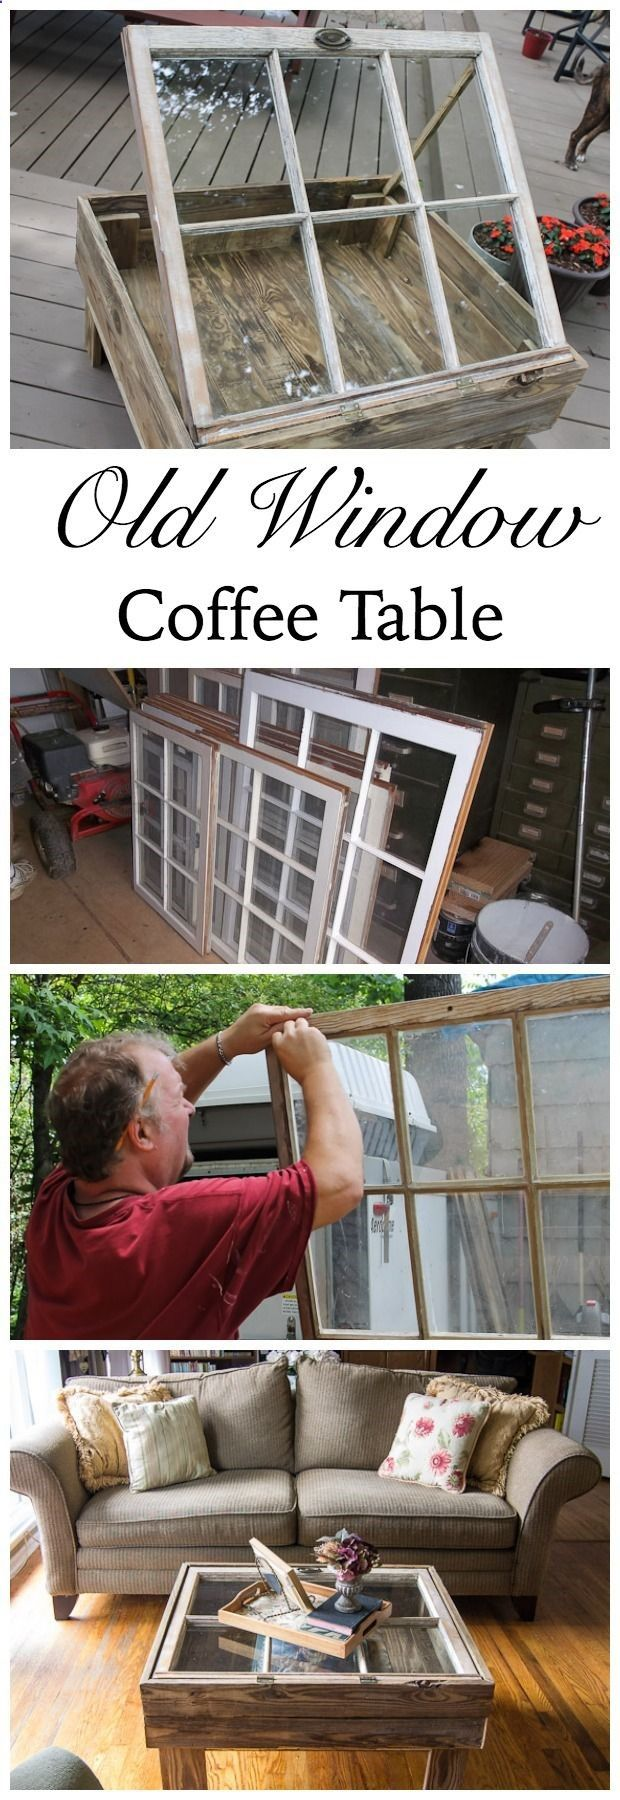 DIY Window Coffee Table Tutorial - Martys Musings